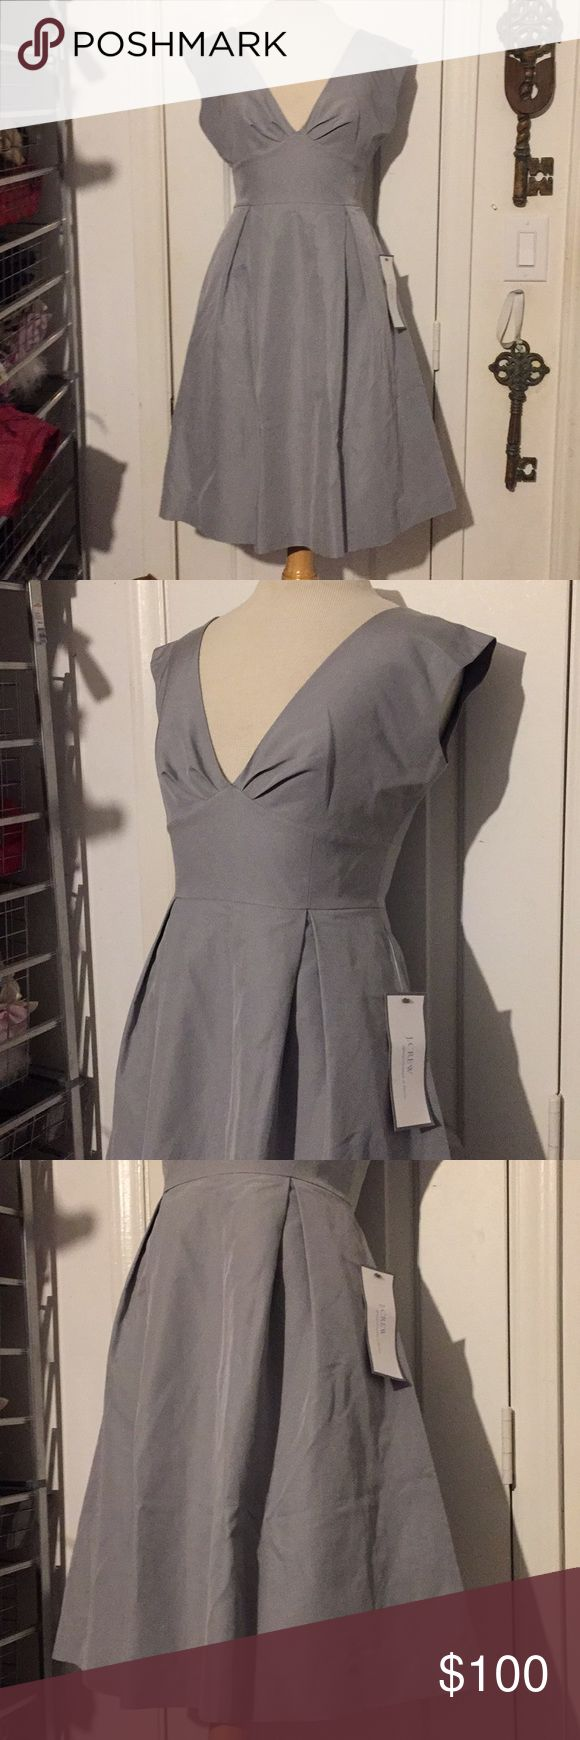 NWT J. Crew Size 2 Silver Gray Silk & Cotton Dress NWT J. Crew Size 2 SilverGray, Silk & Cotton Special Occasion Cocktail Dress! Gorgeous cap sleeves, zip back, fully lined and petite pleats. Absolutely stunning and classic! No snags or stains! J. Crew Dresses